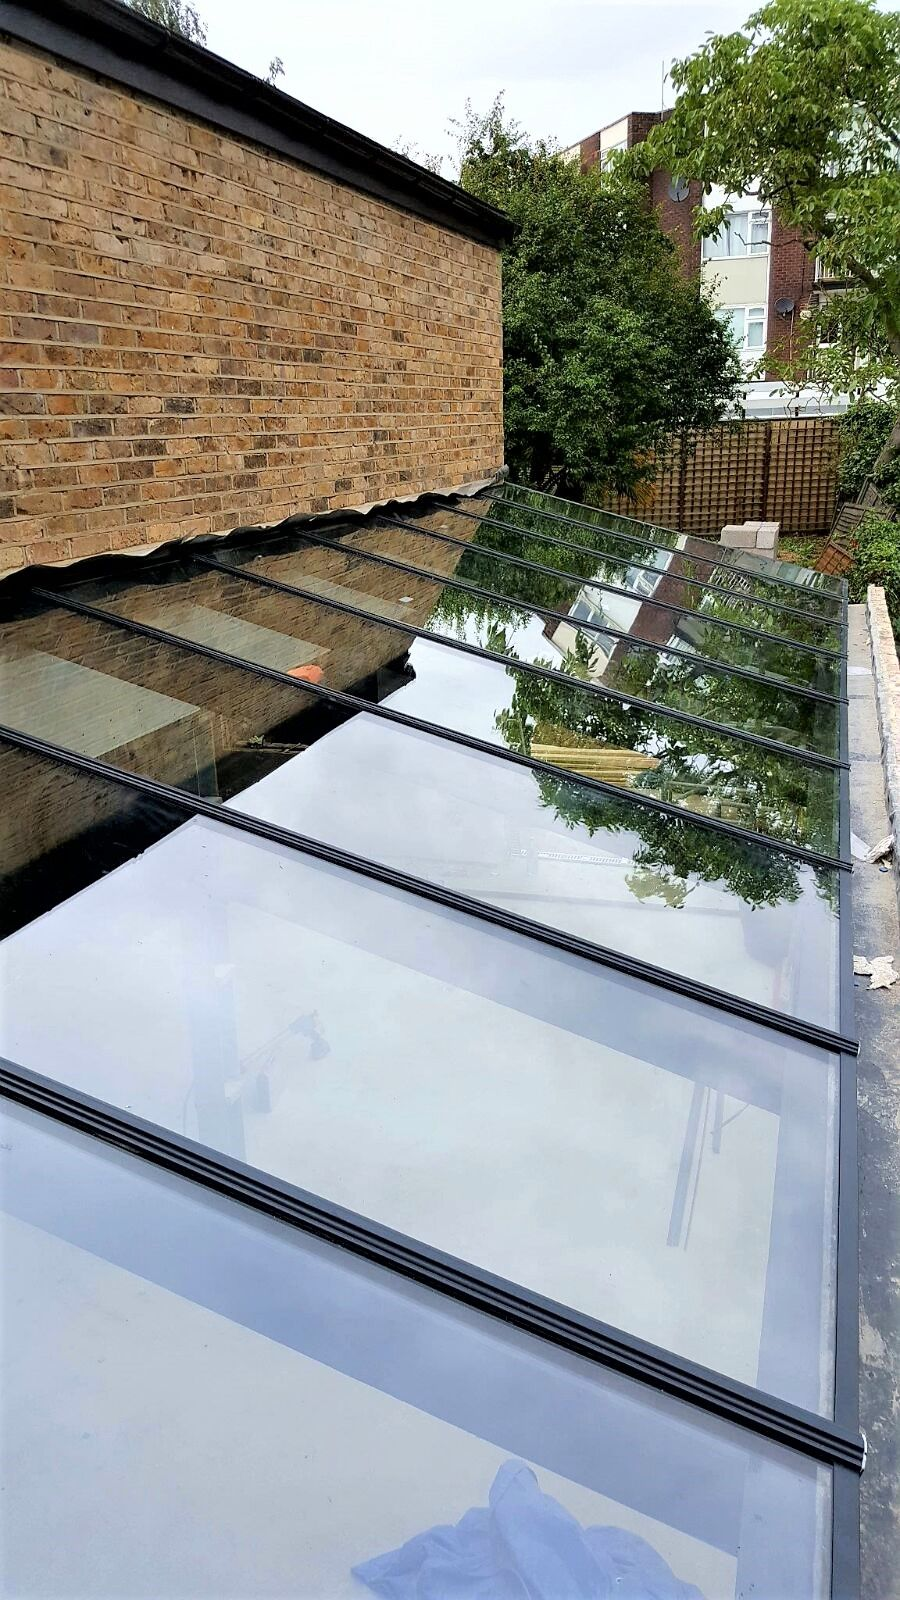 Glass Roof With Glazing Bar System G L A S S R O O